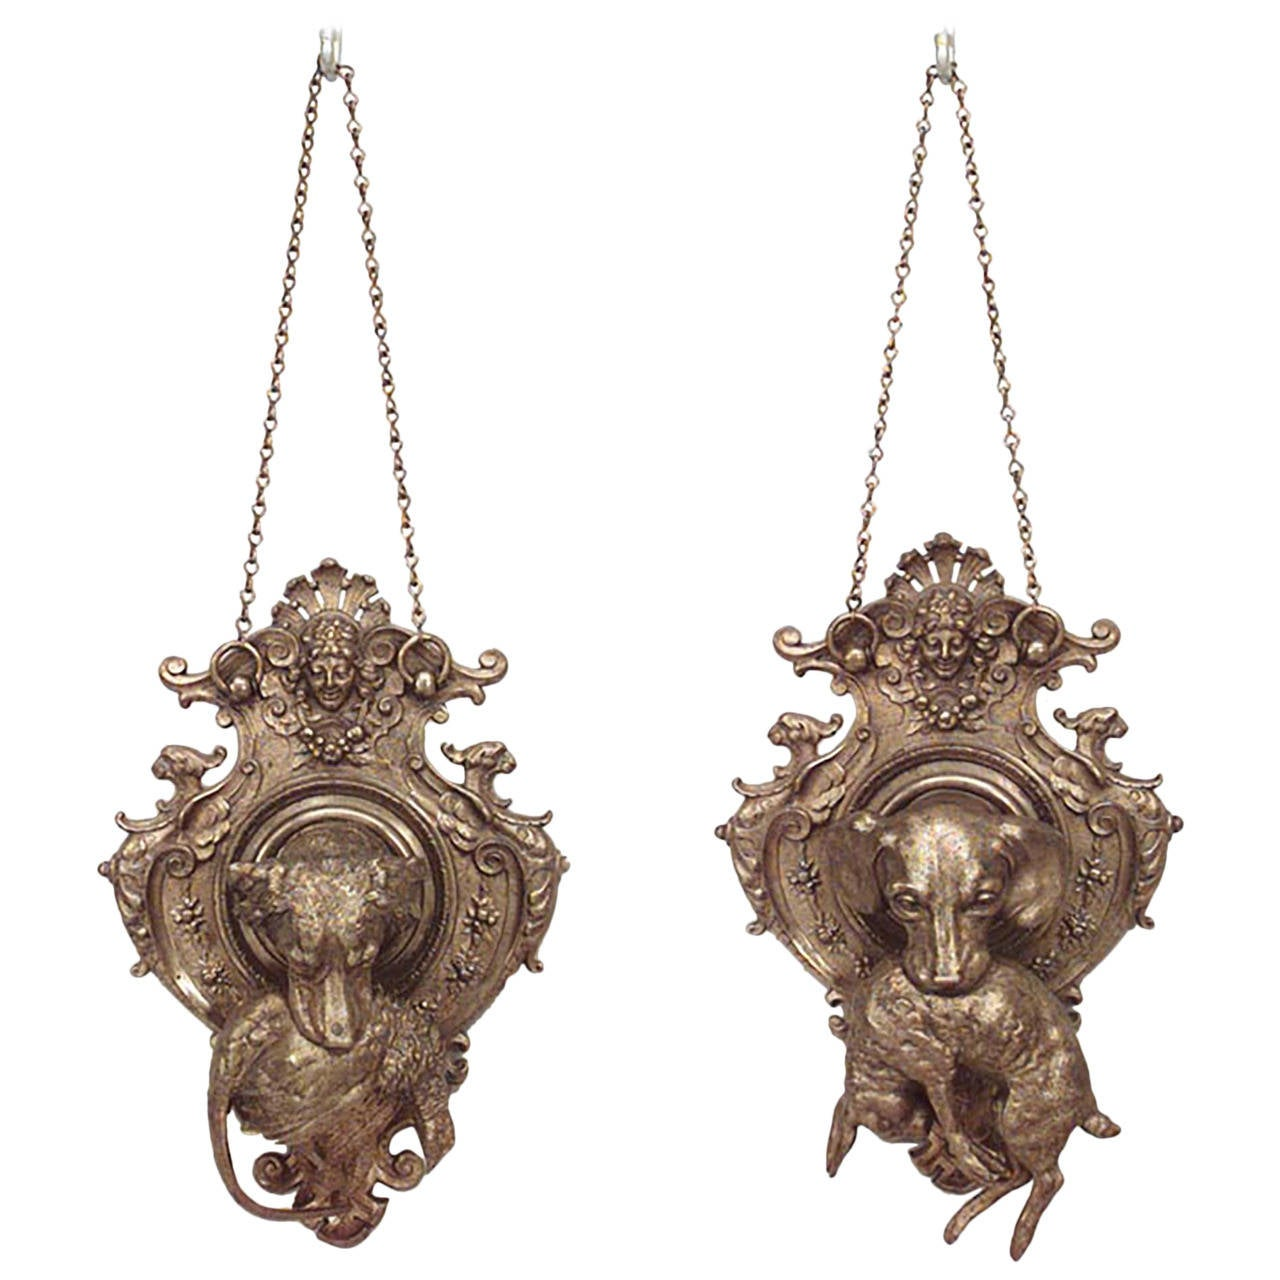 Pair of 19th c. French Shaped Bronze Hunt-Themed Wall Plaques